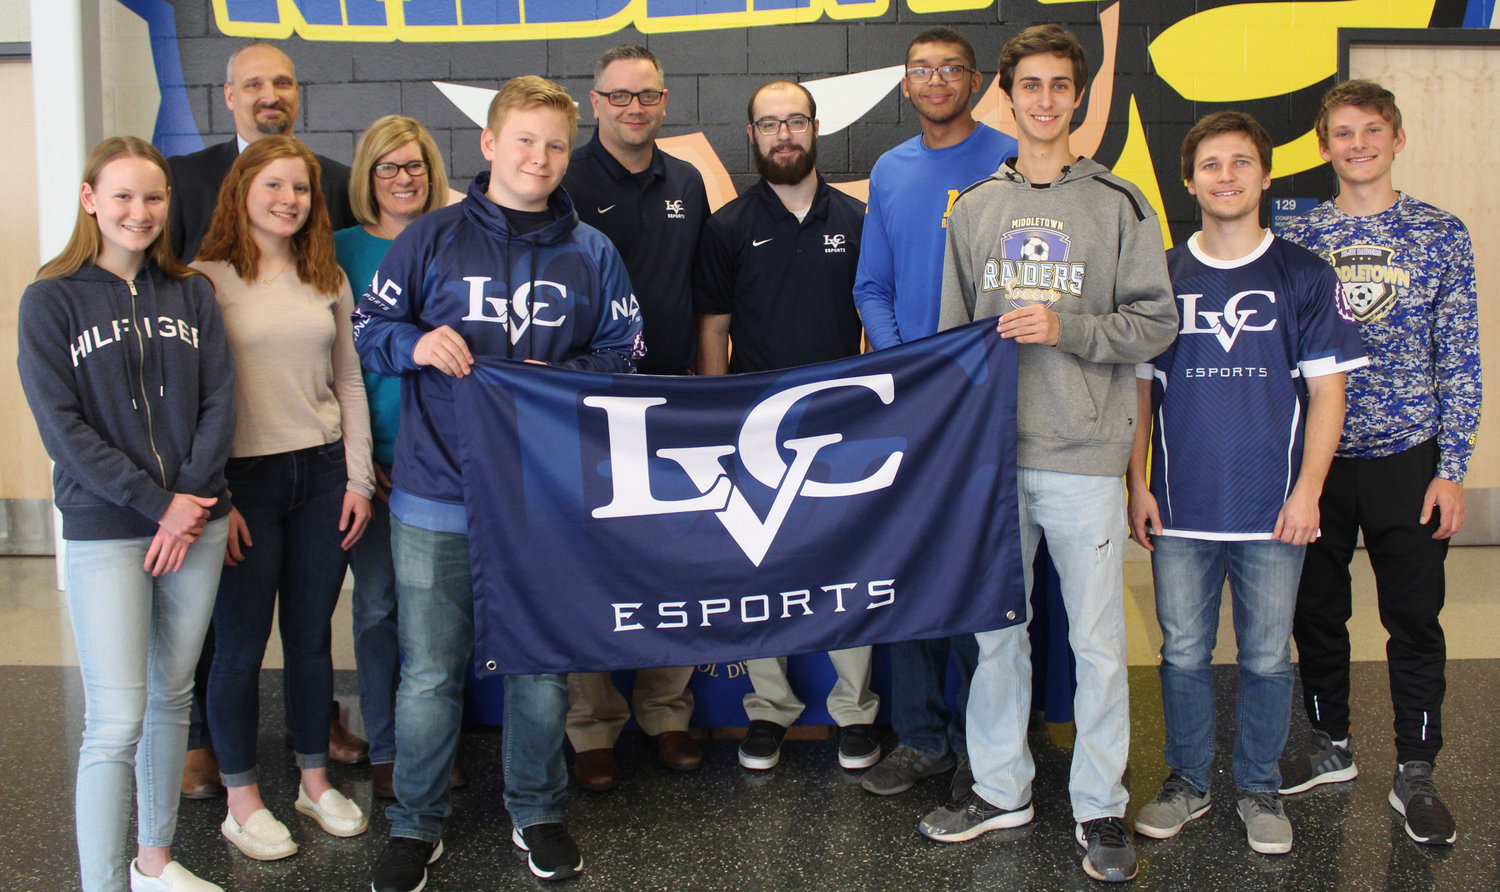 Mason Garza, center left, poses with friends, family, MAHS staff and Lebanon Valley College staff after being presented with a scholarship to participate on LVC's Esports team on March 14.